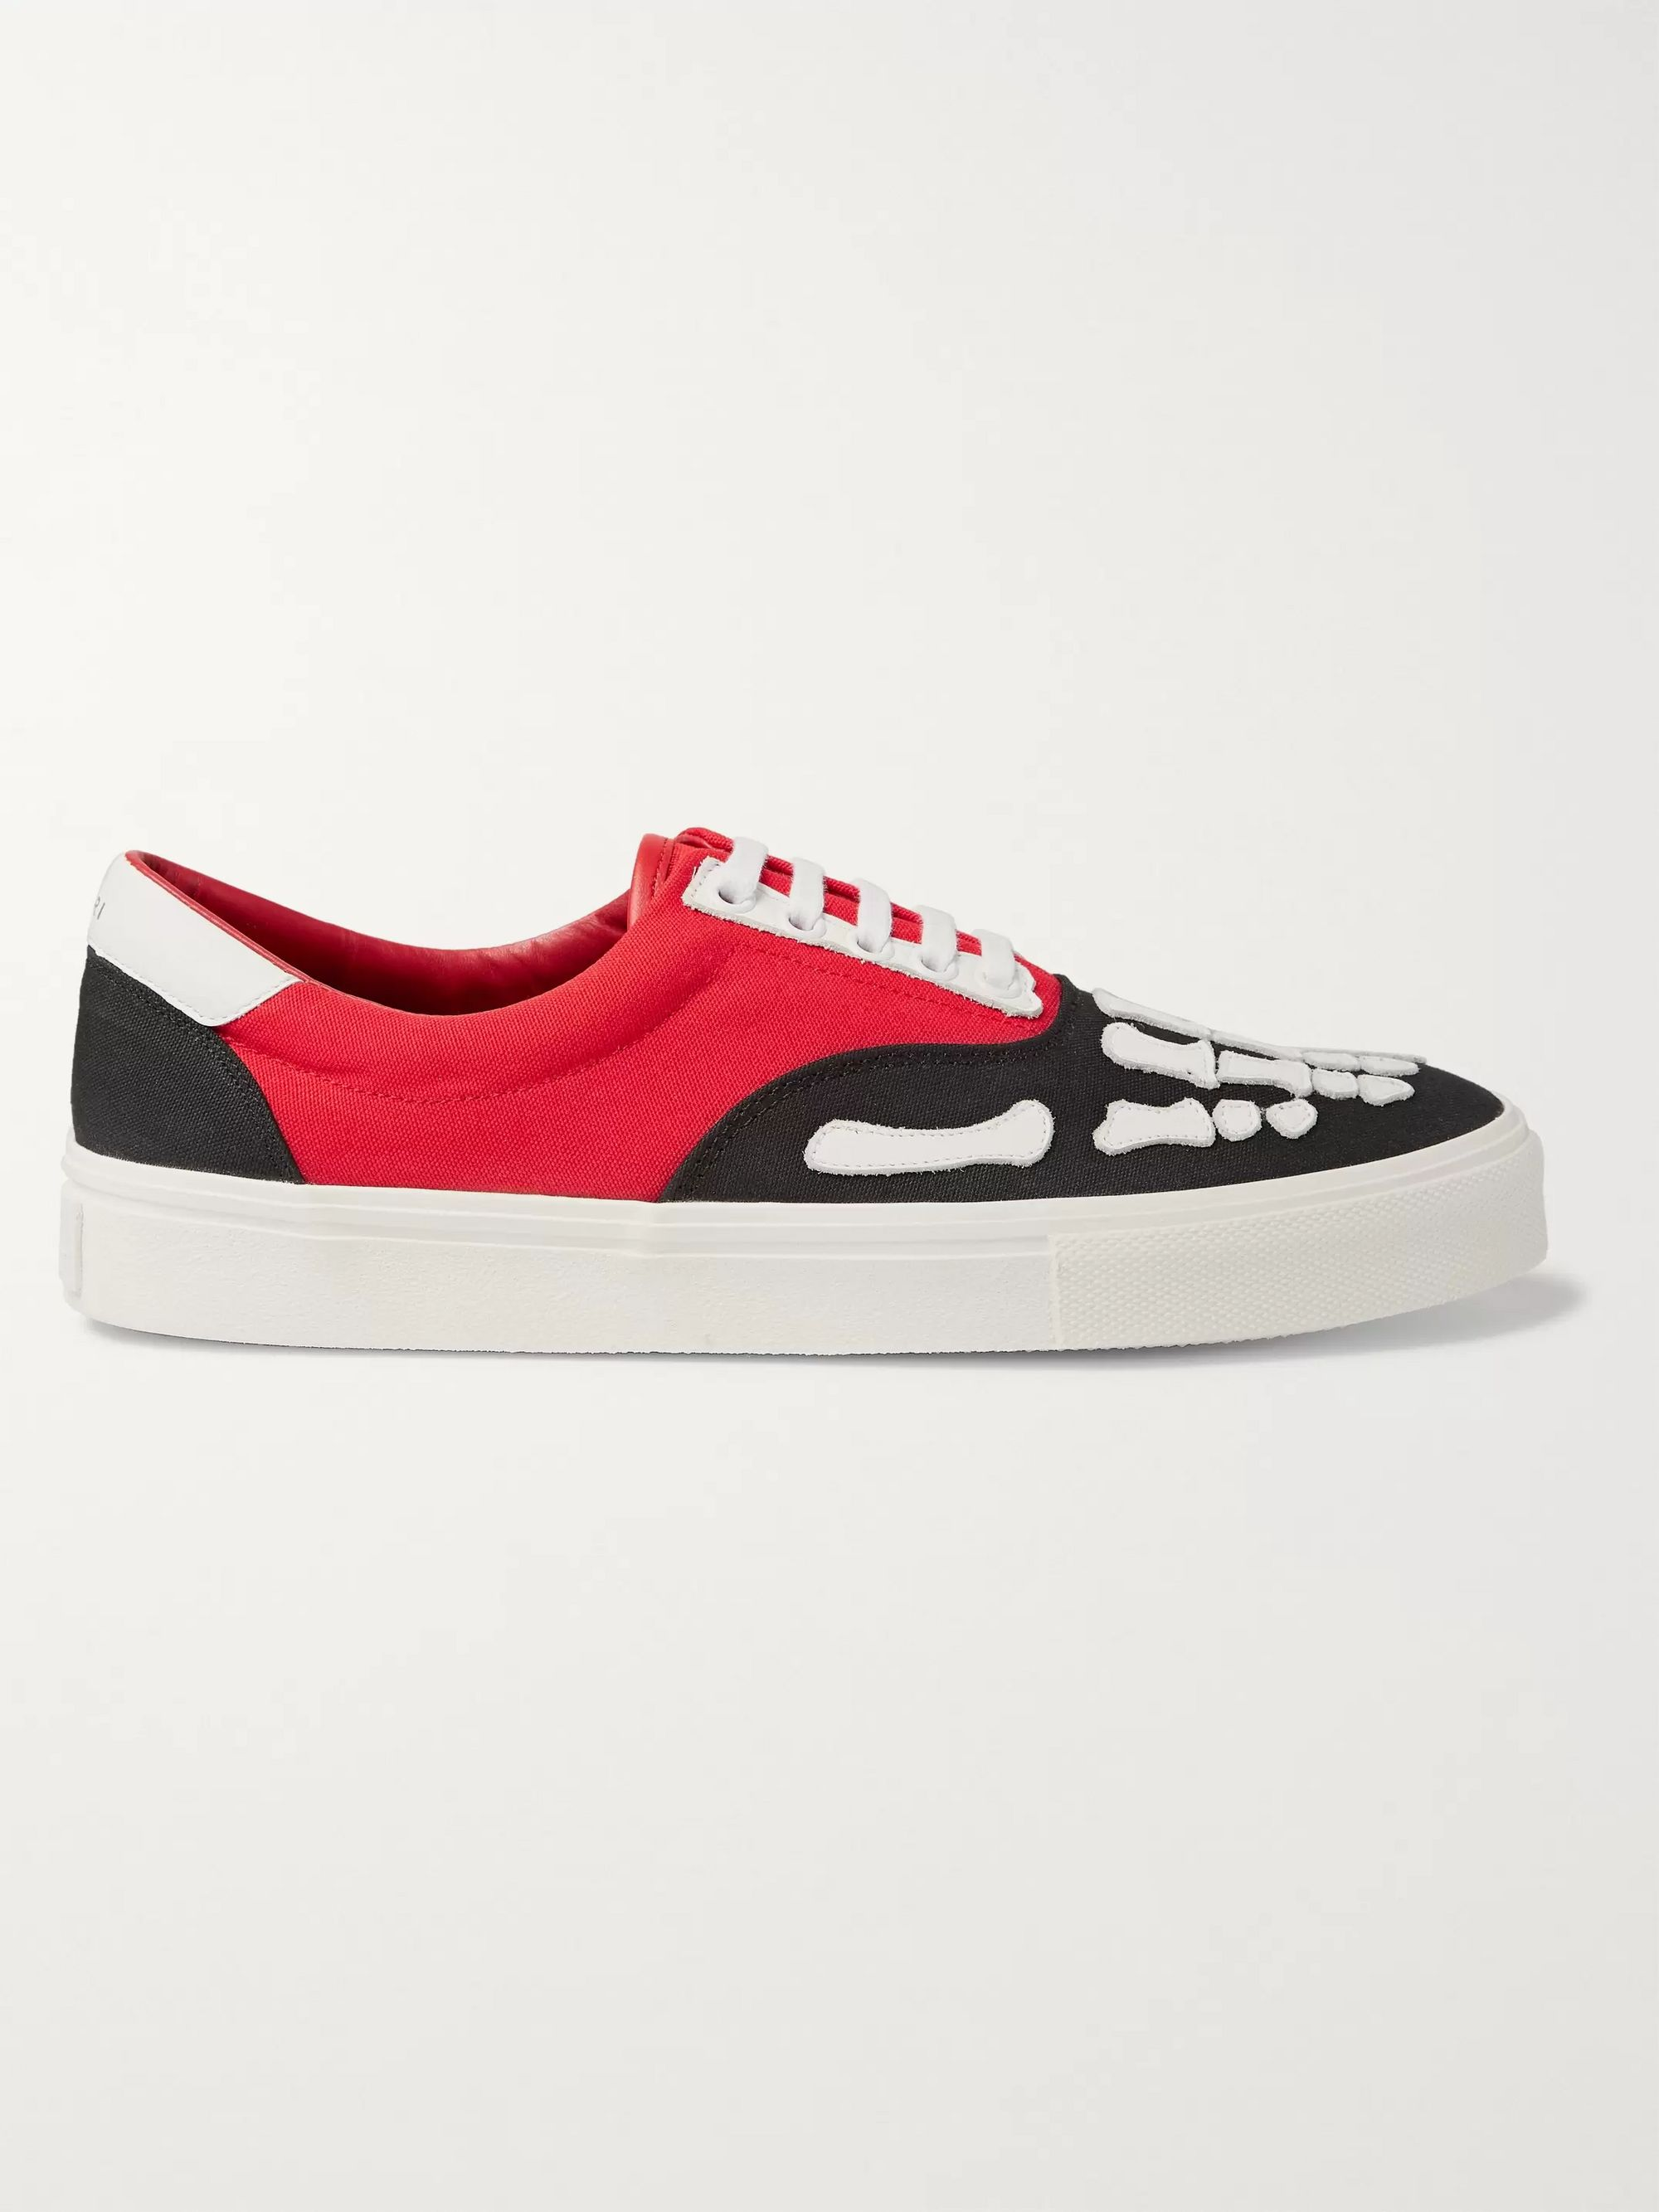 AMIRI Skel Toe Leather-Trimmed Colour-Block Canvas Sneakers